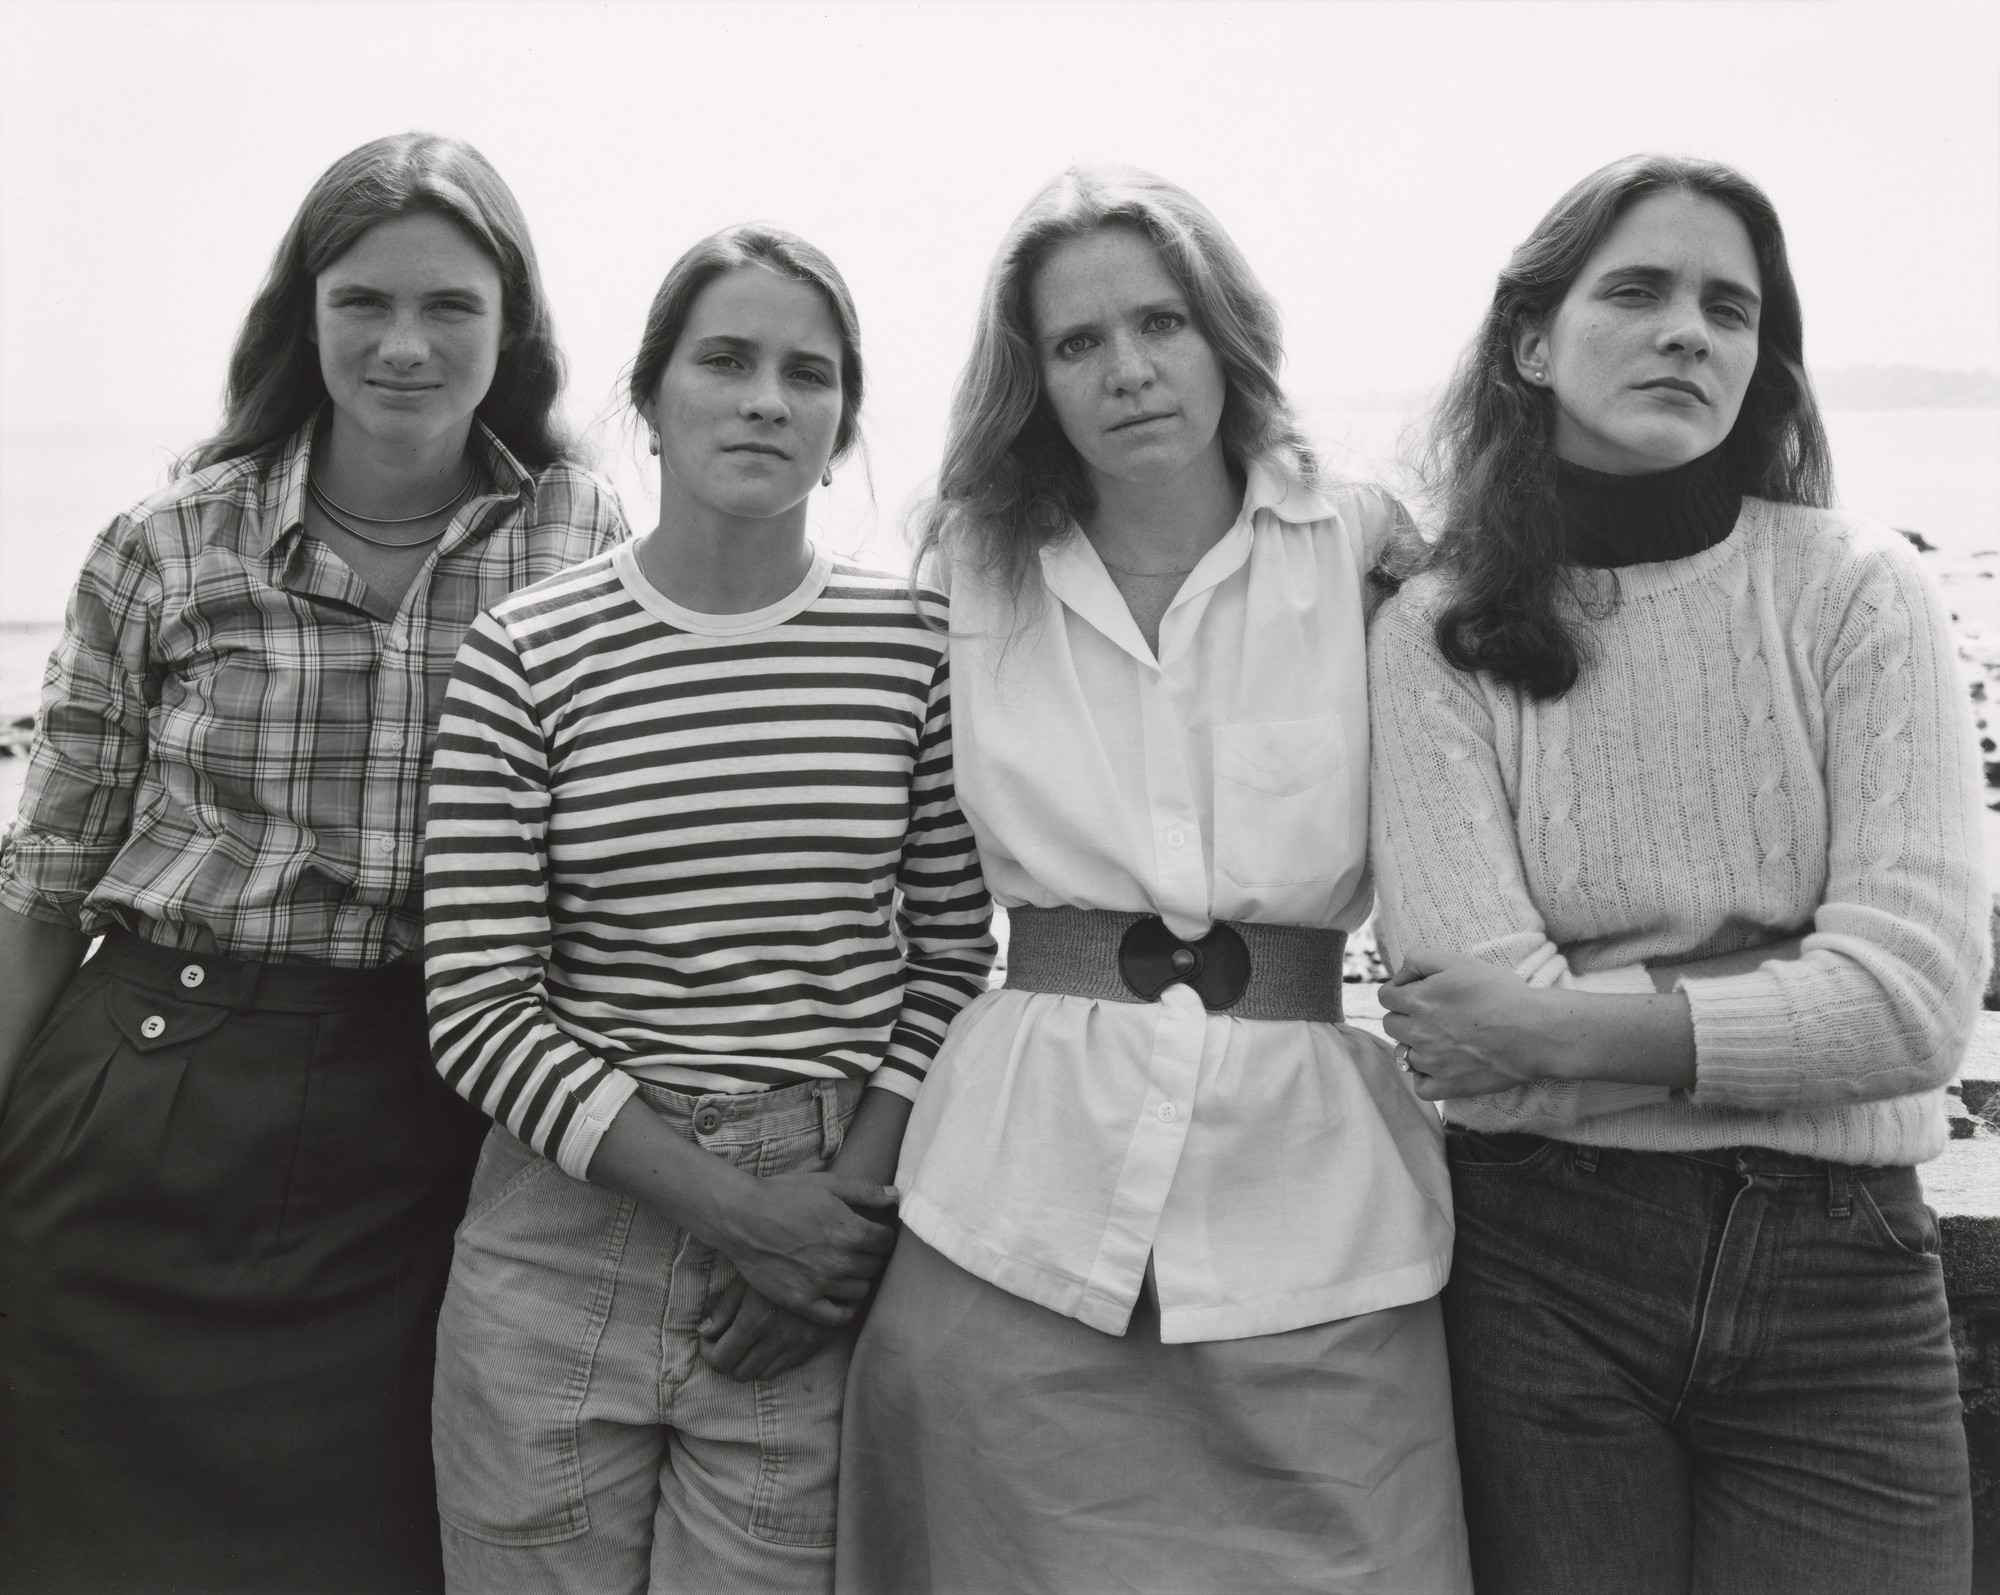 Nicholas Nixon. The Brown Sisters, Marblehead, Massachusetts. 1979